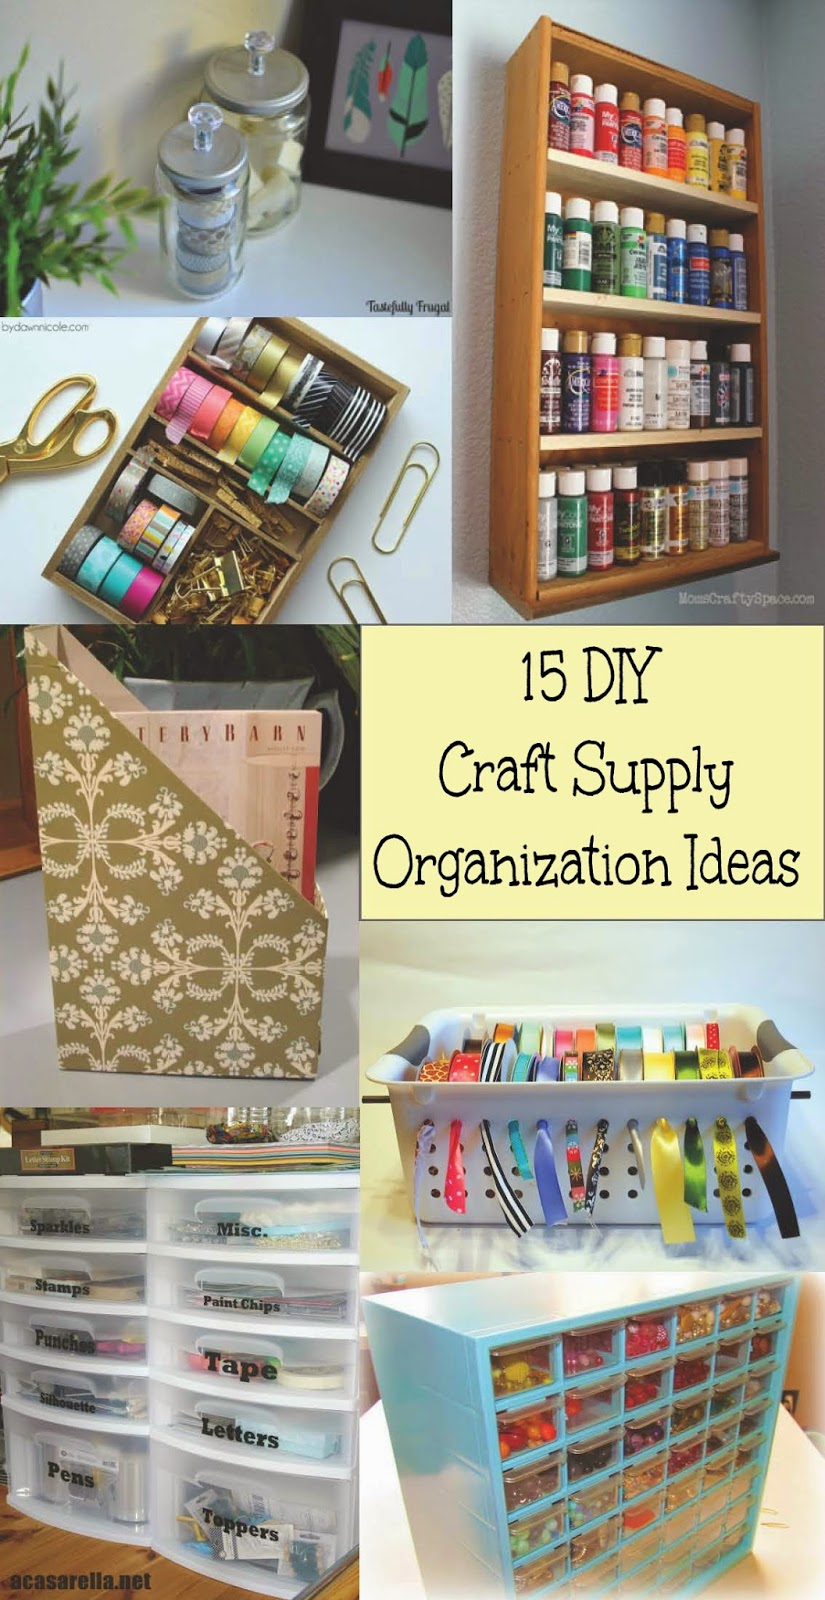 15 diy craft supply organization ideas home crafts by ali for Diy organization crafts